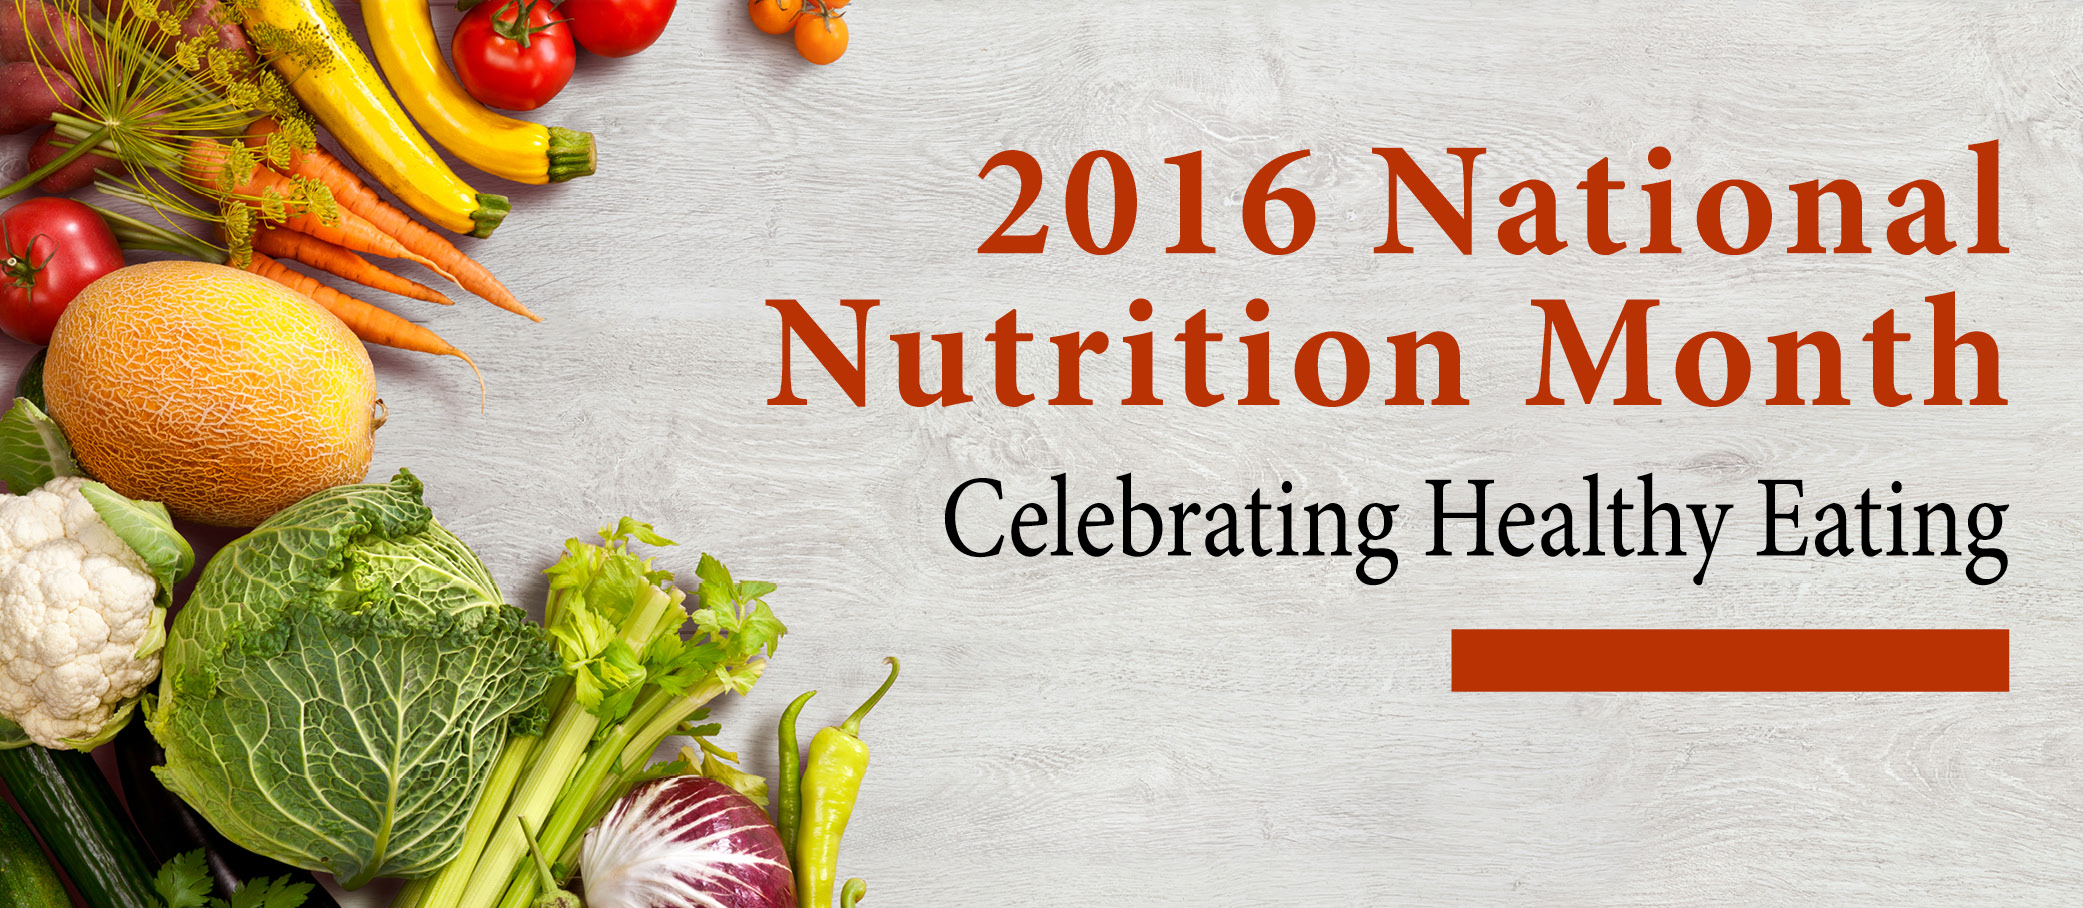 Graphic for with photo of vegetables that reads: 2016 National Nutrition Month, Celebrating Healthy Eating